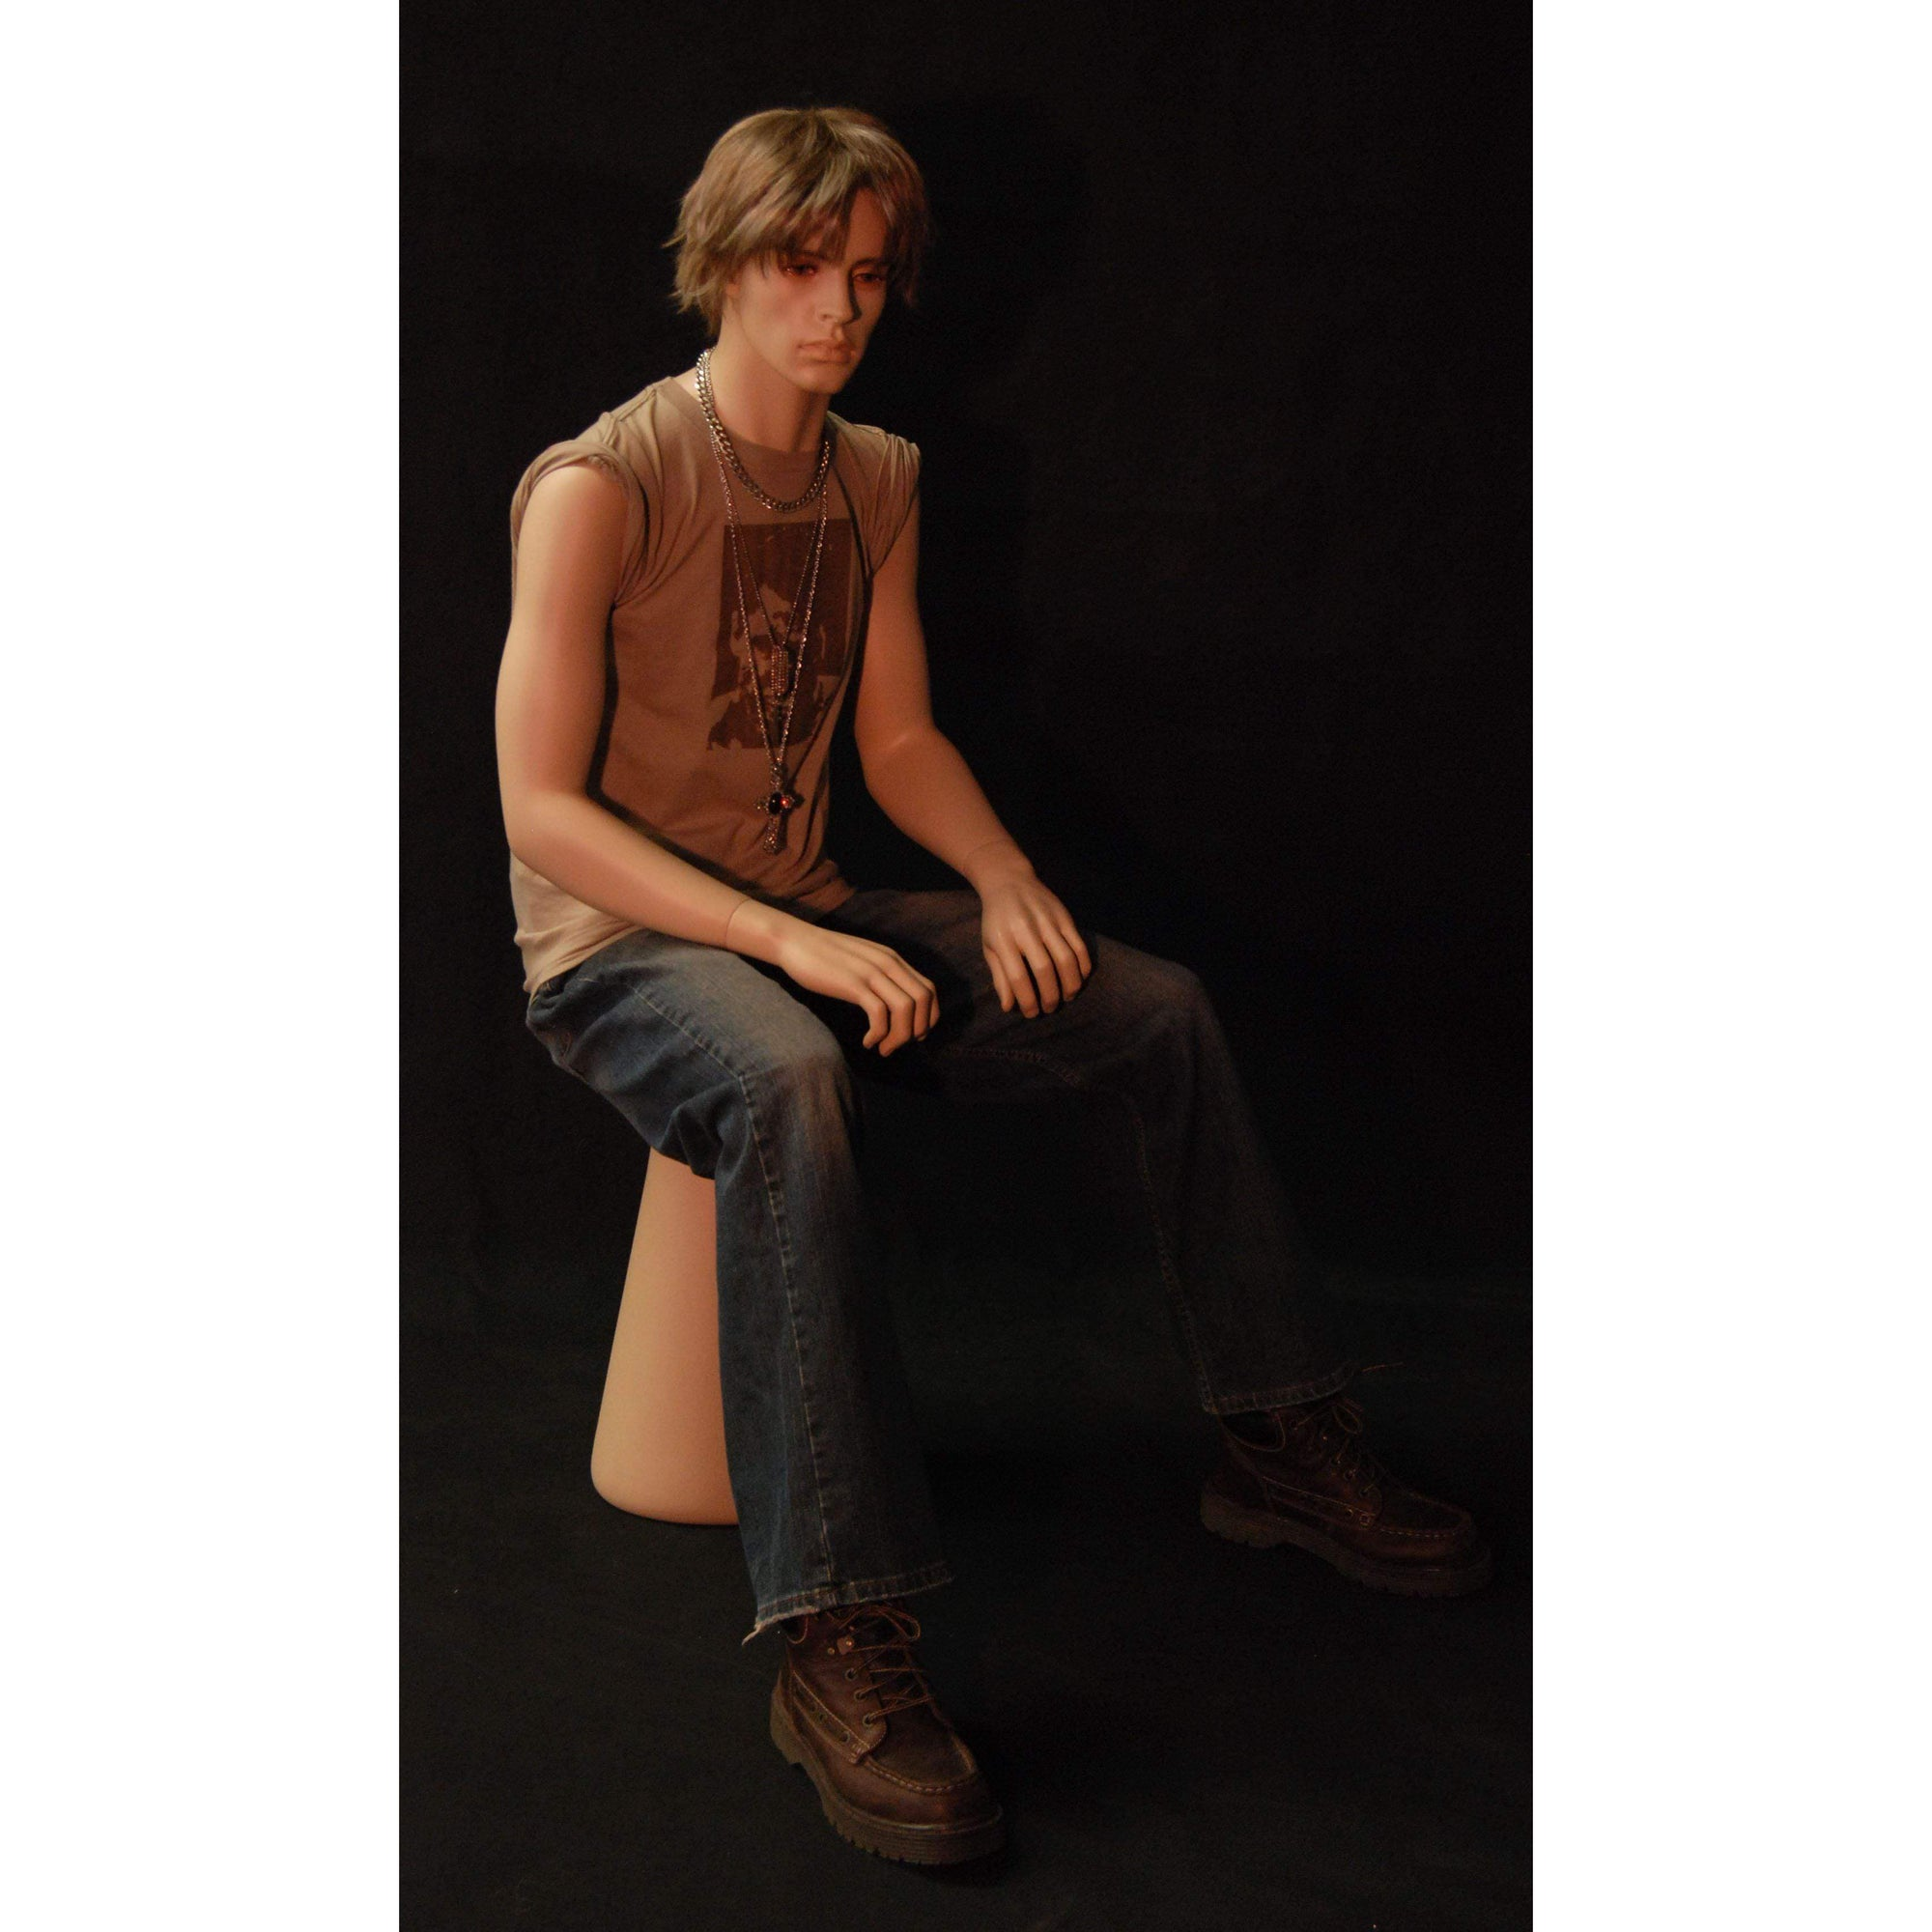 Mannequin Mall Male Realistic Mannequin MM-KW15F For Fashion Stores and Retail Shops